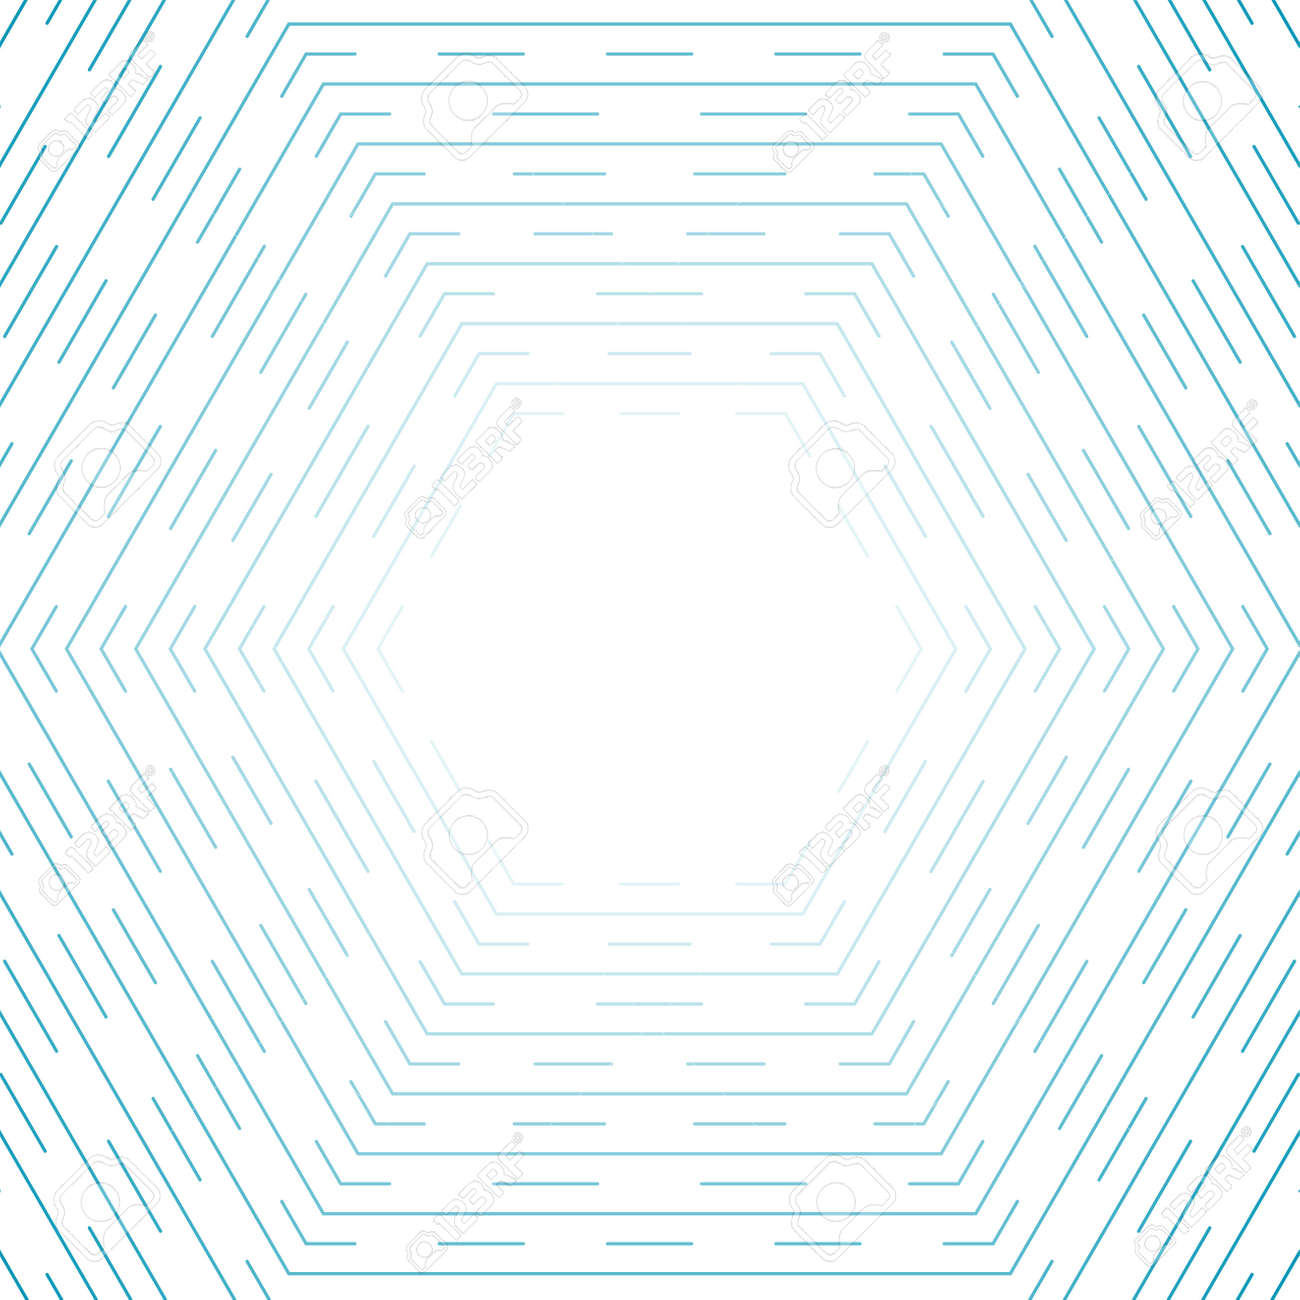 Blue hexagonal lines abstract futuristic technology background. Vector design - 169078066